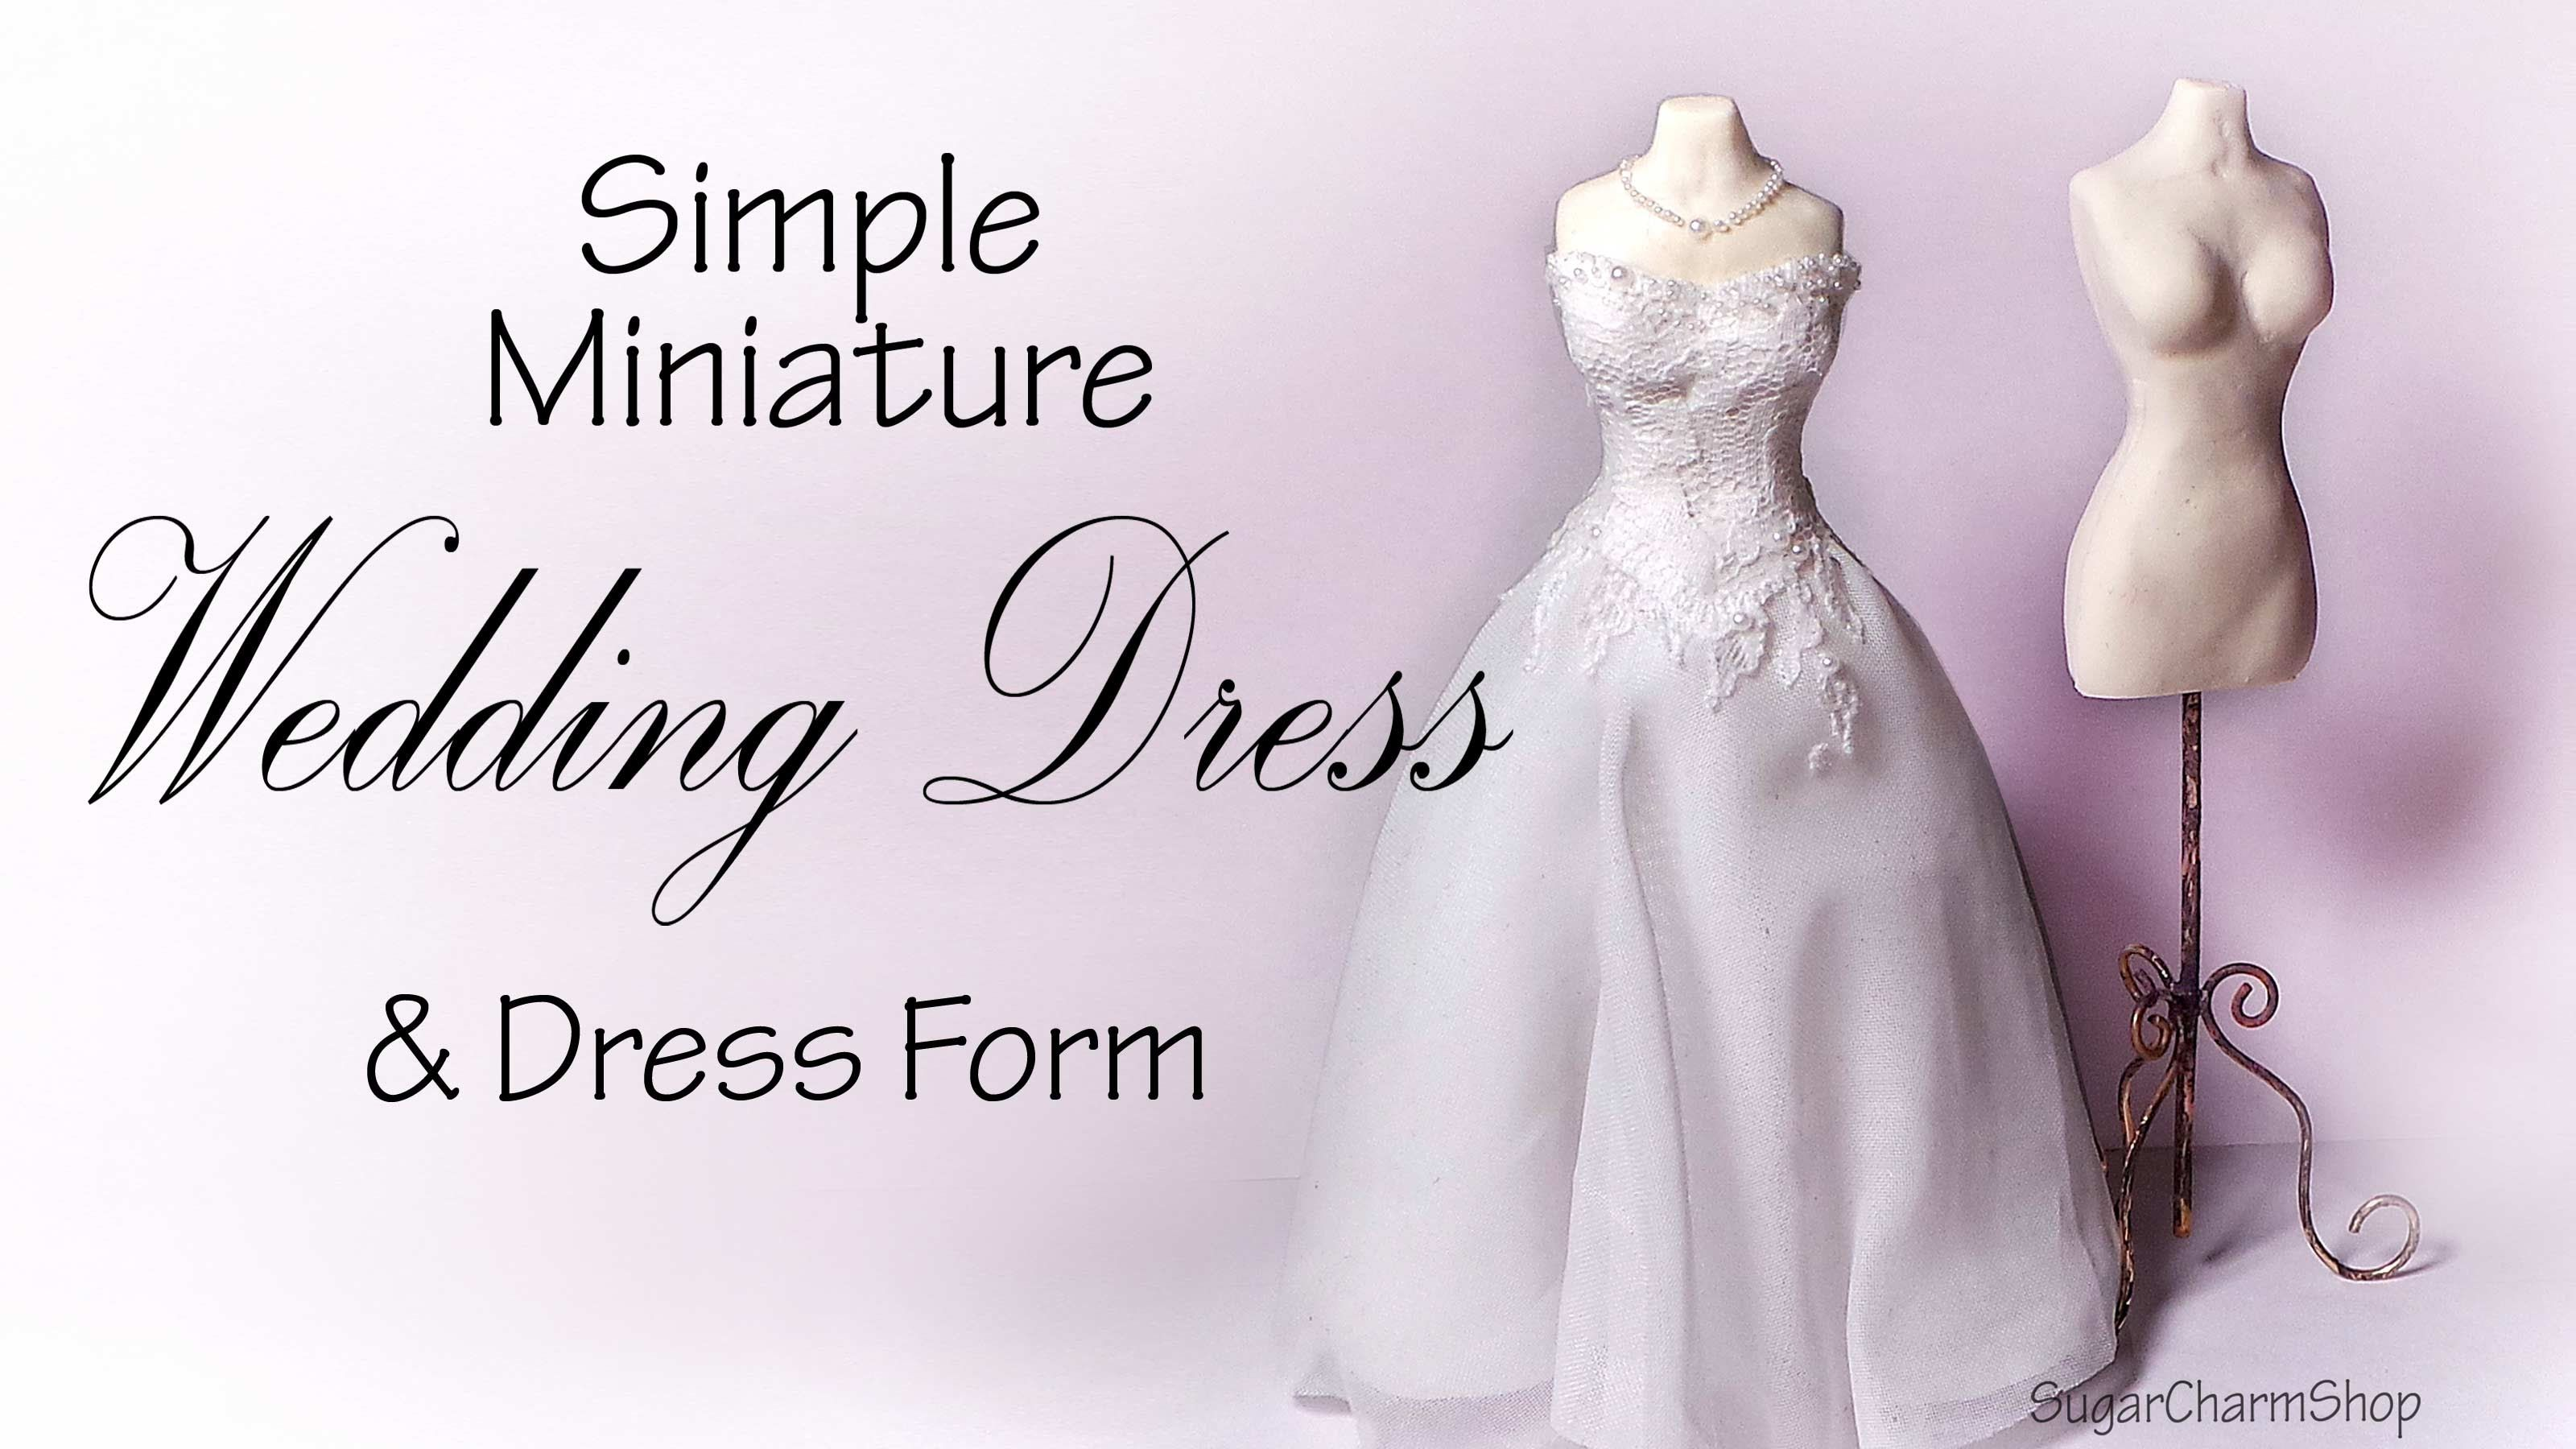 How To Simple Miniature Wedding Dress And Form